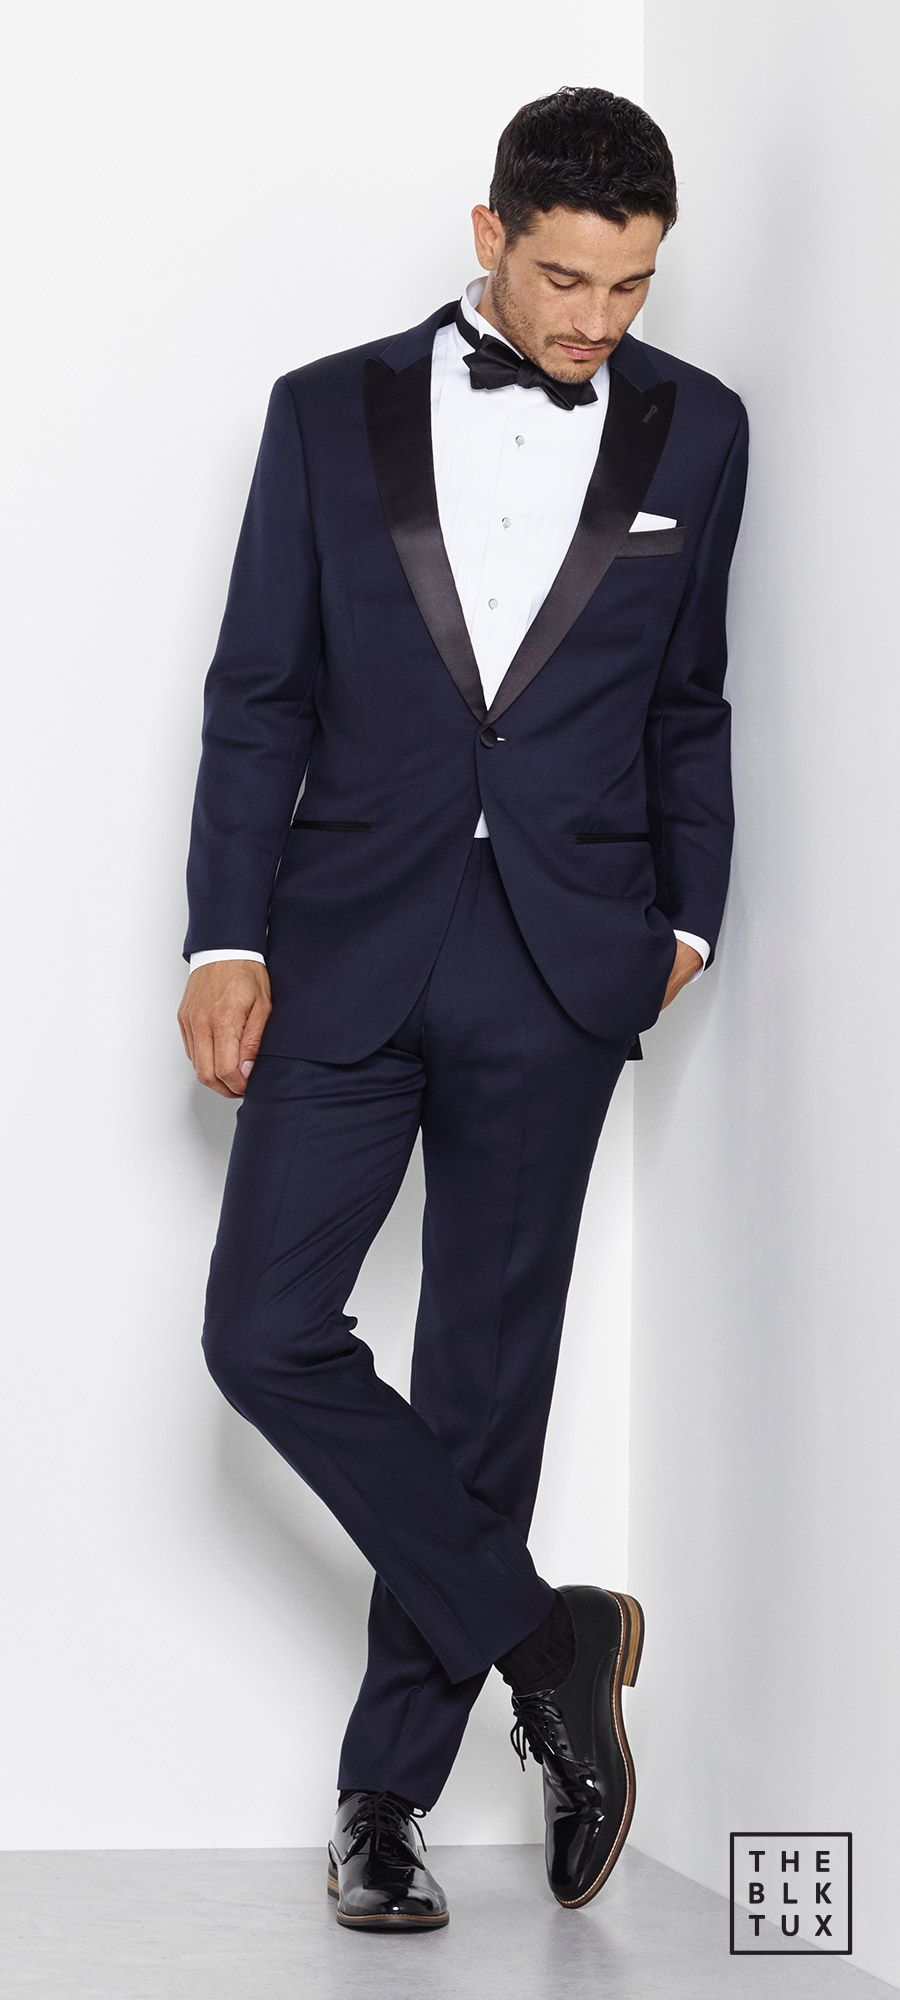 Suit Up in Style, The Black Tux Way — Tuxedo Rentals Done Right ...